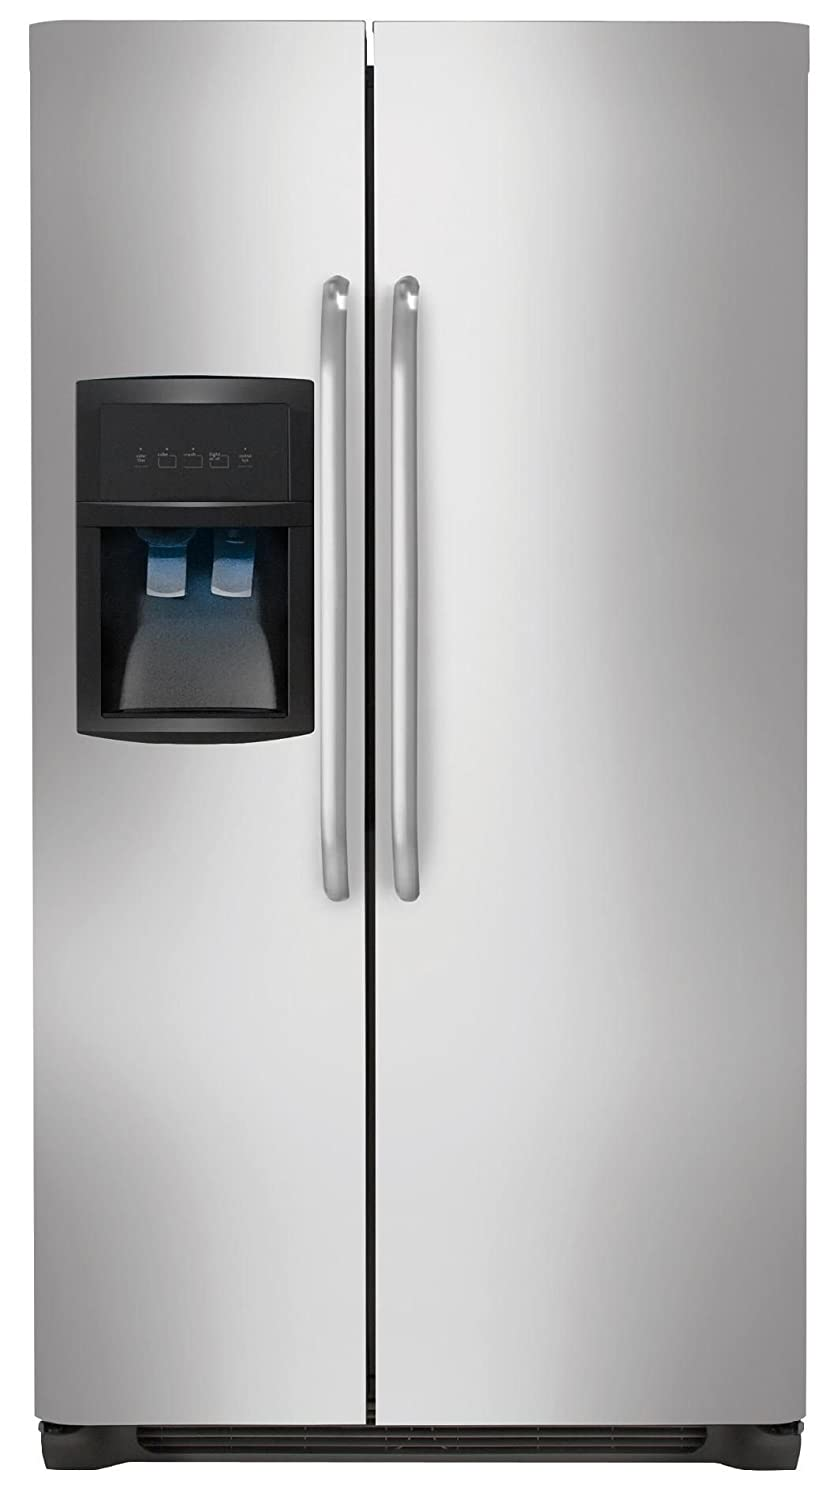 Frigidaire FRIGIDAIRE 26 cu. ft. Side-by-Side Refrigerator - Stainless Steel